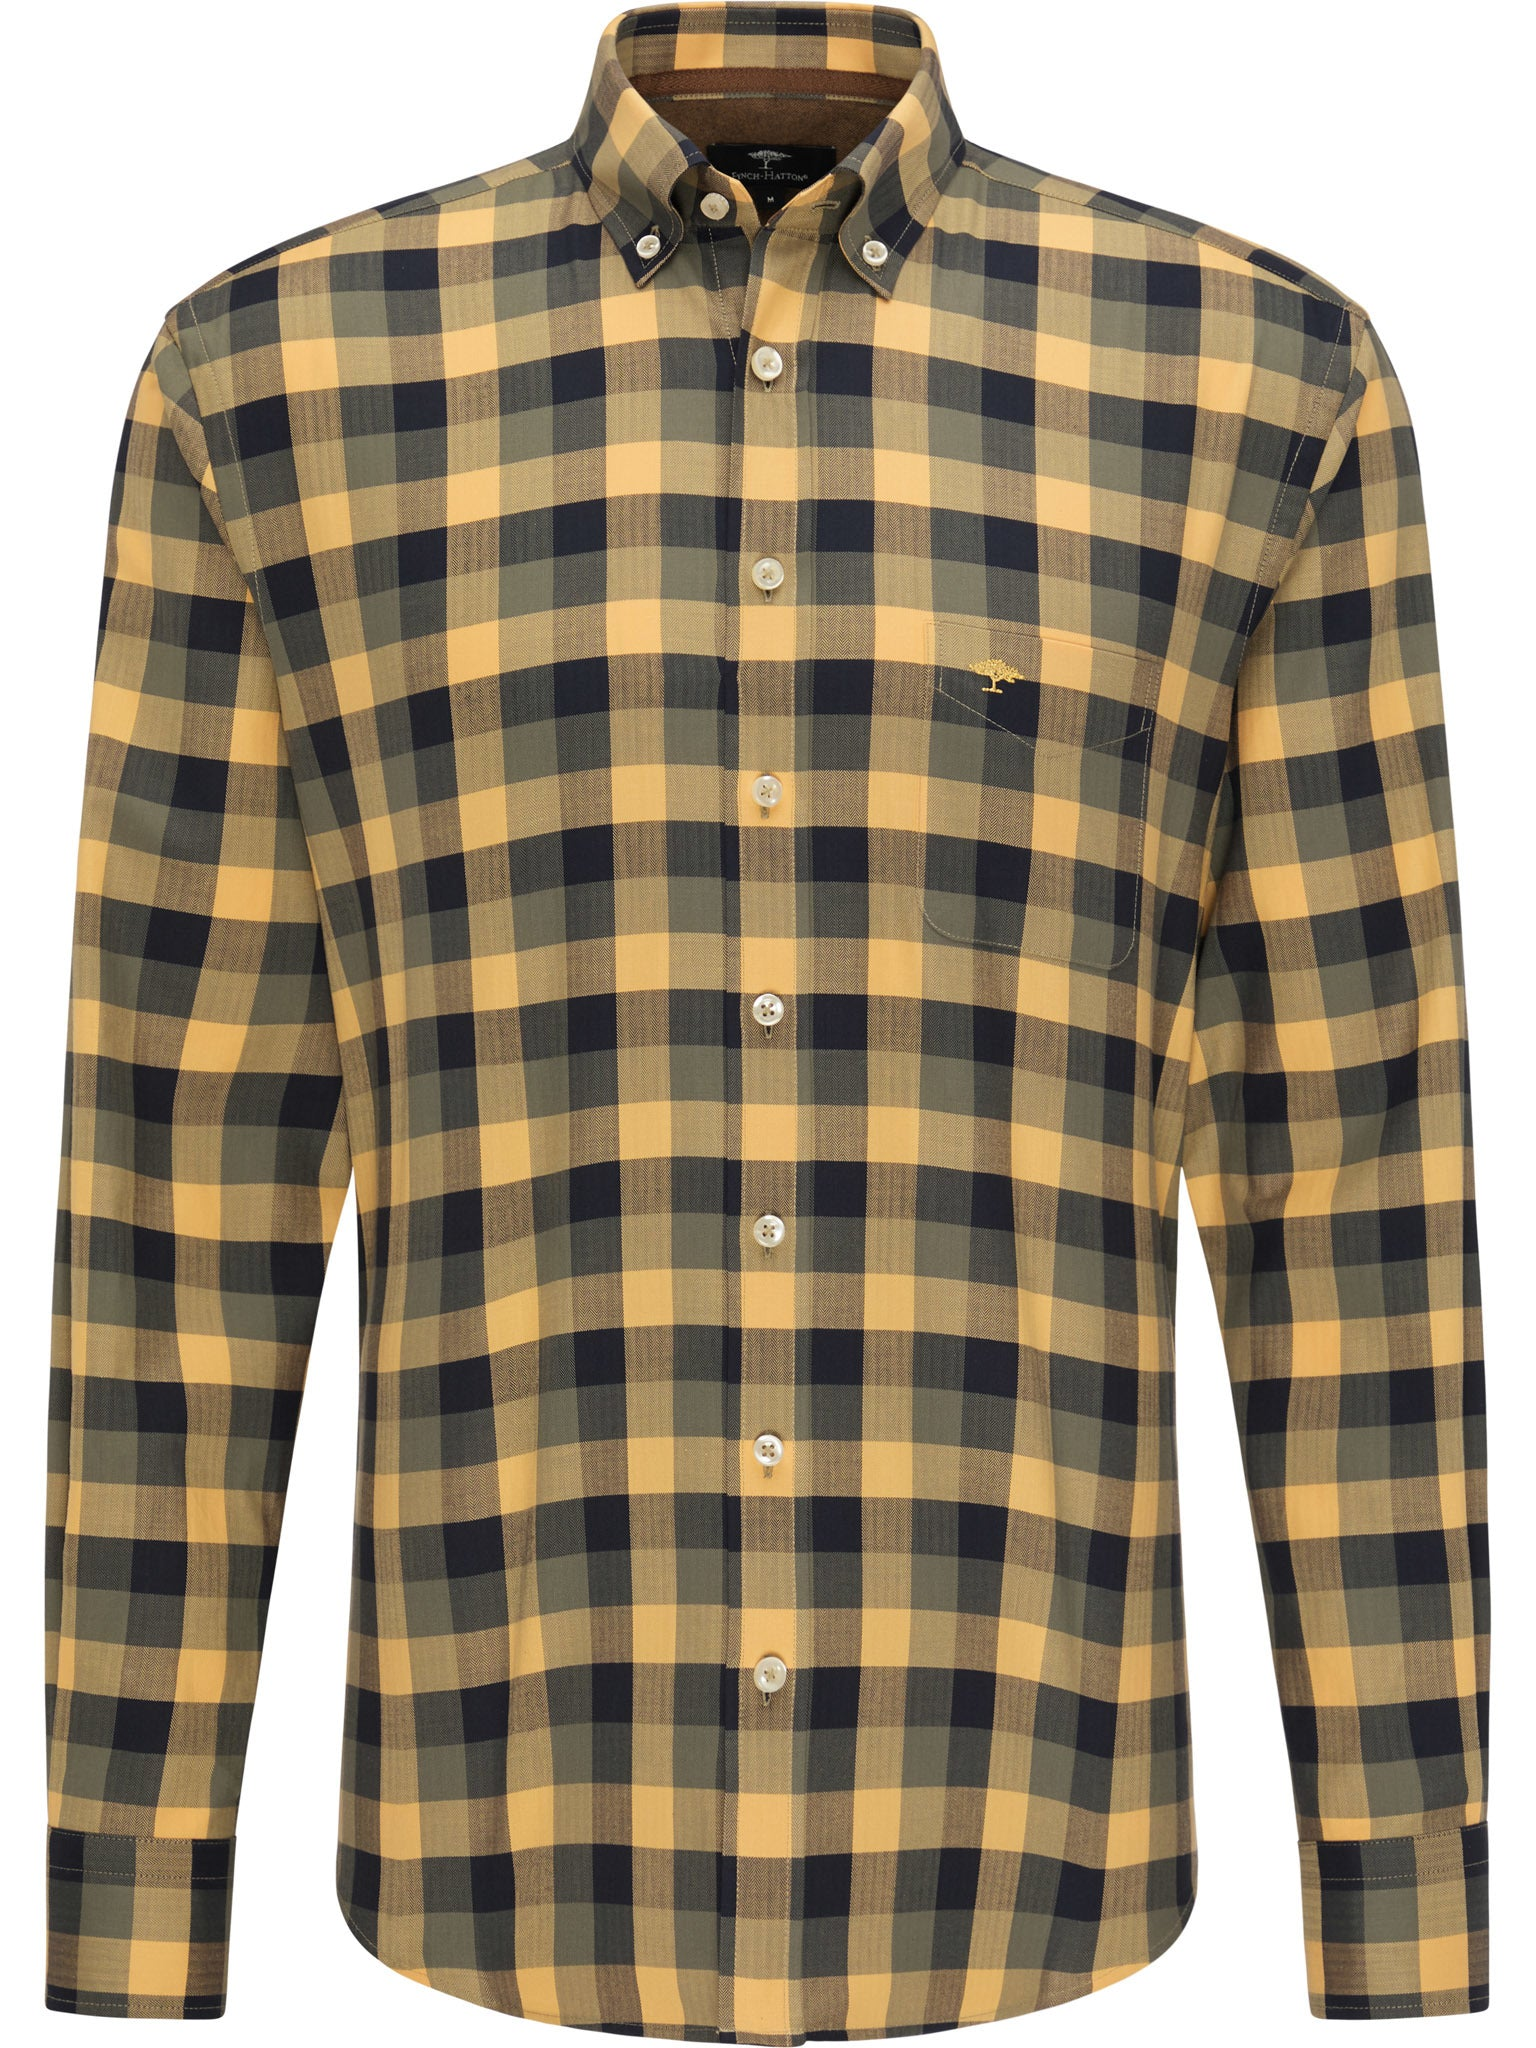 Fynch Hatton Checked Casual Fit Premium Shirt for Men in Mustard Check